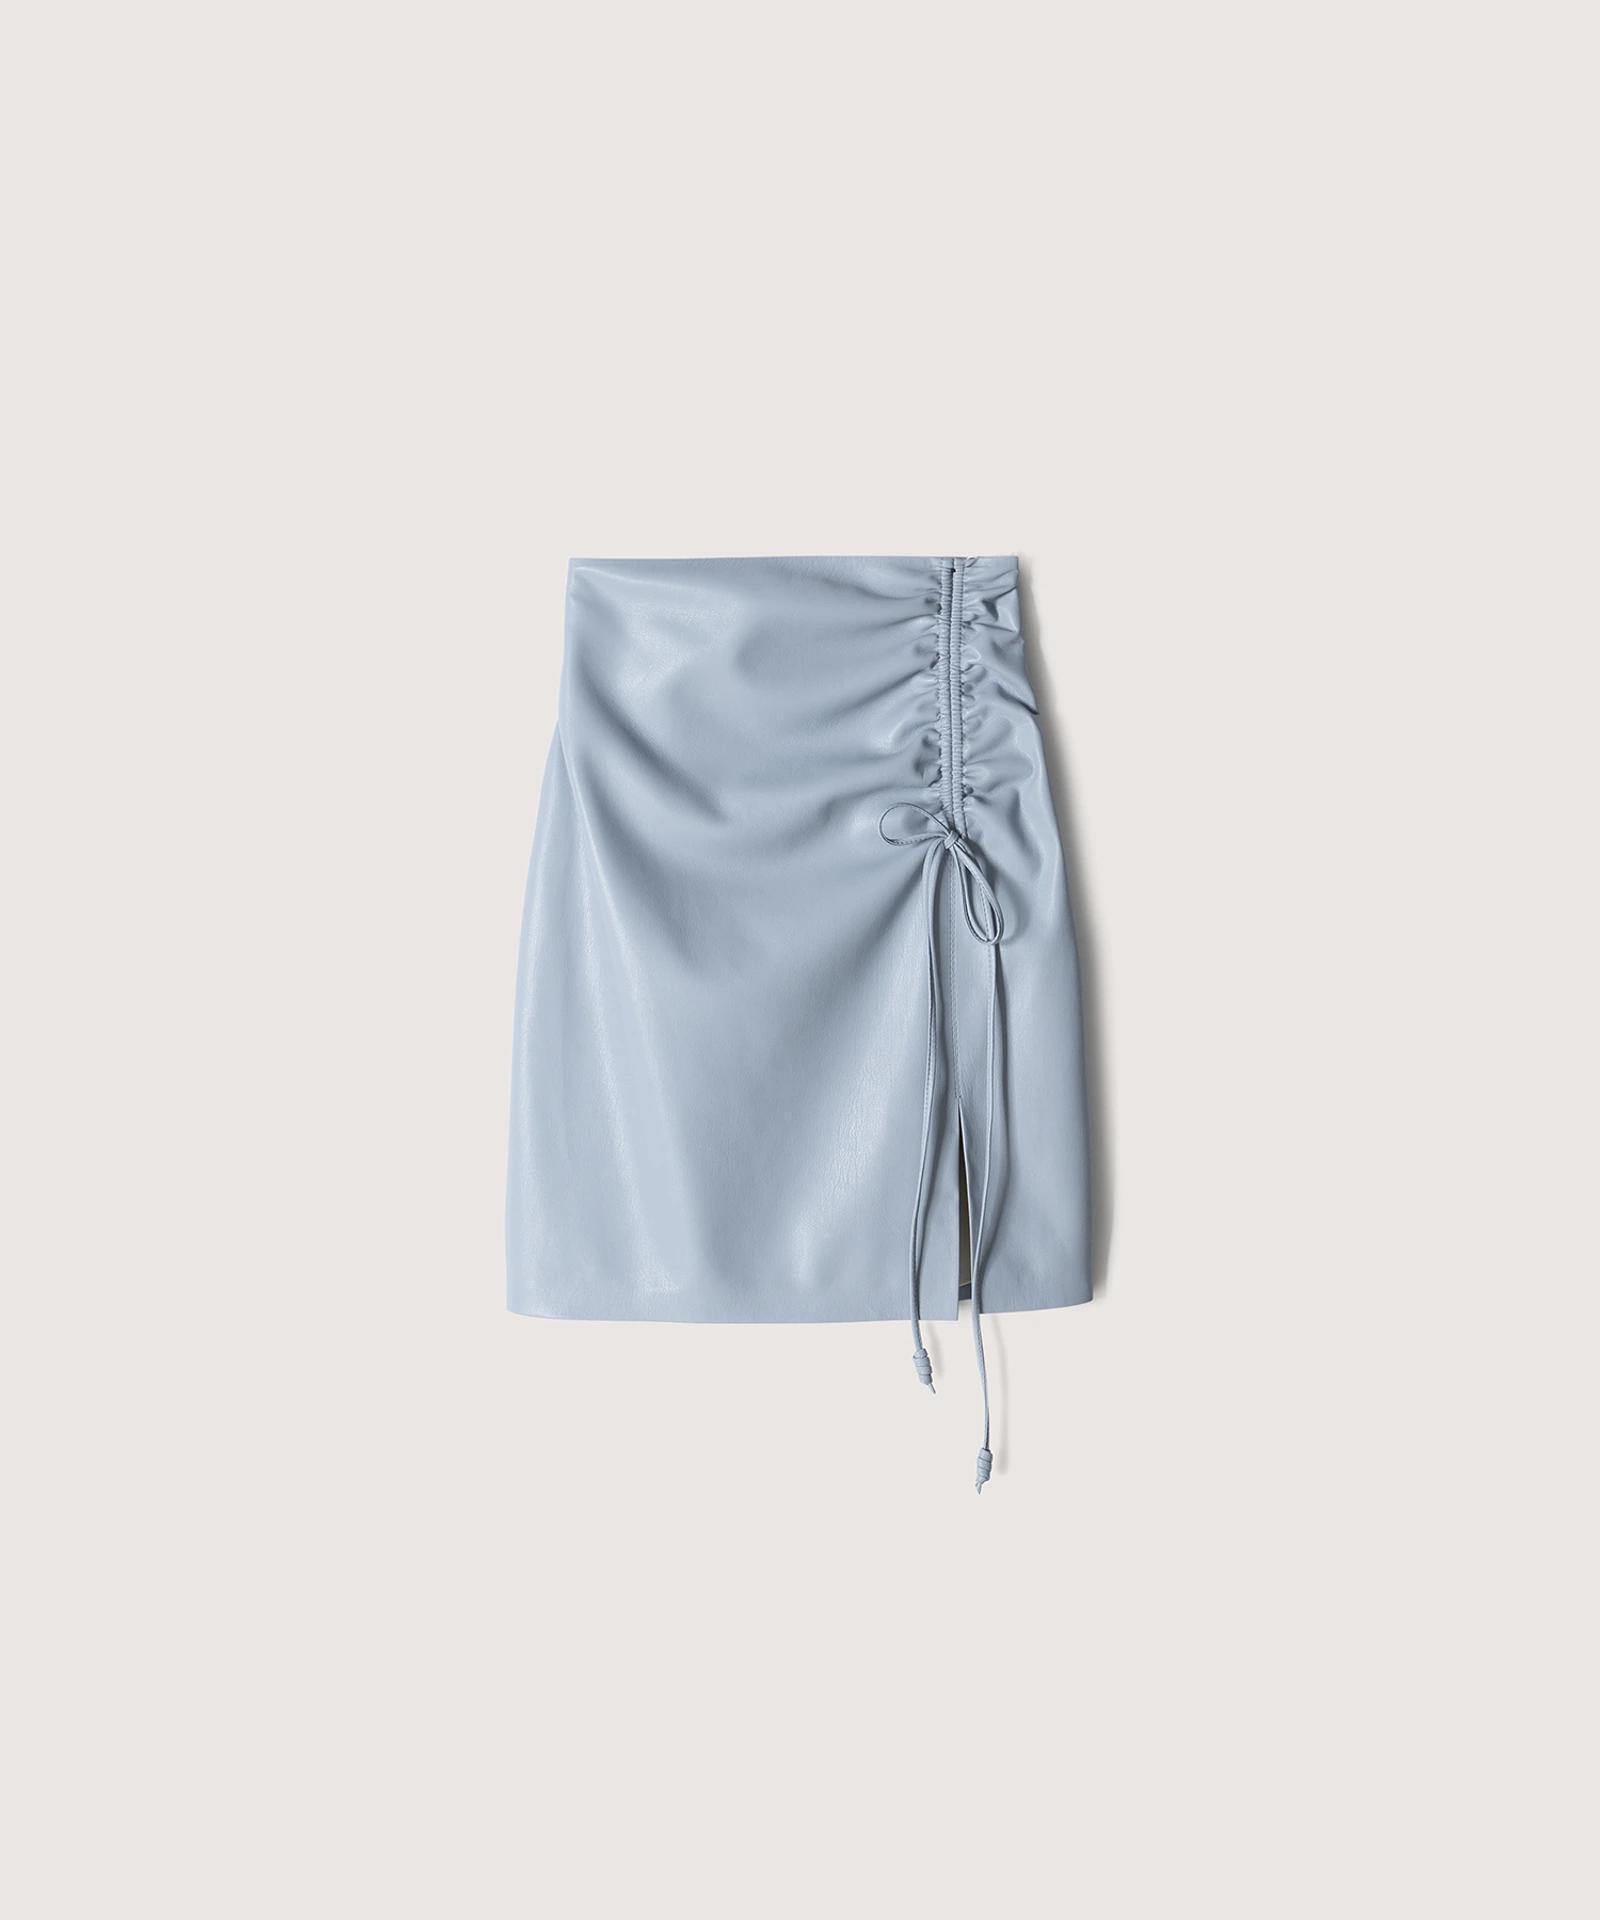 ZOW - Ruched vegan leather mini skirt - Dusty blue